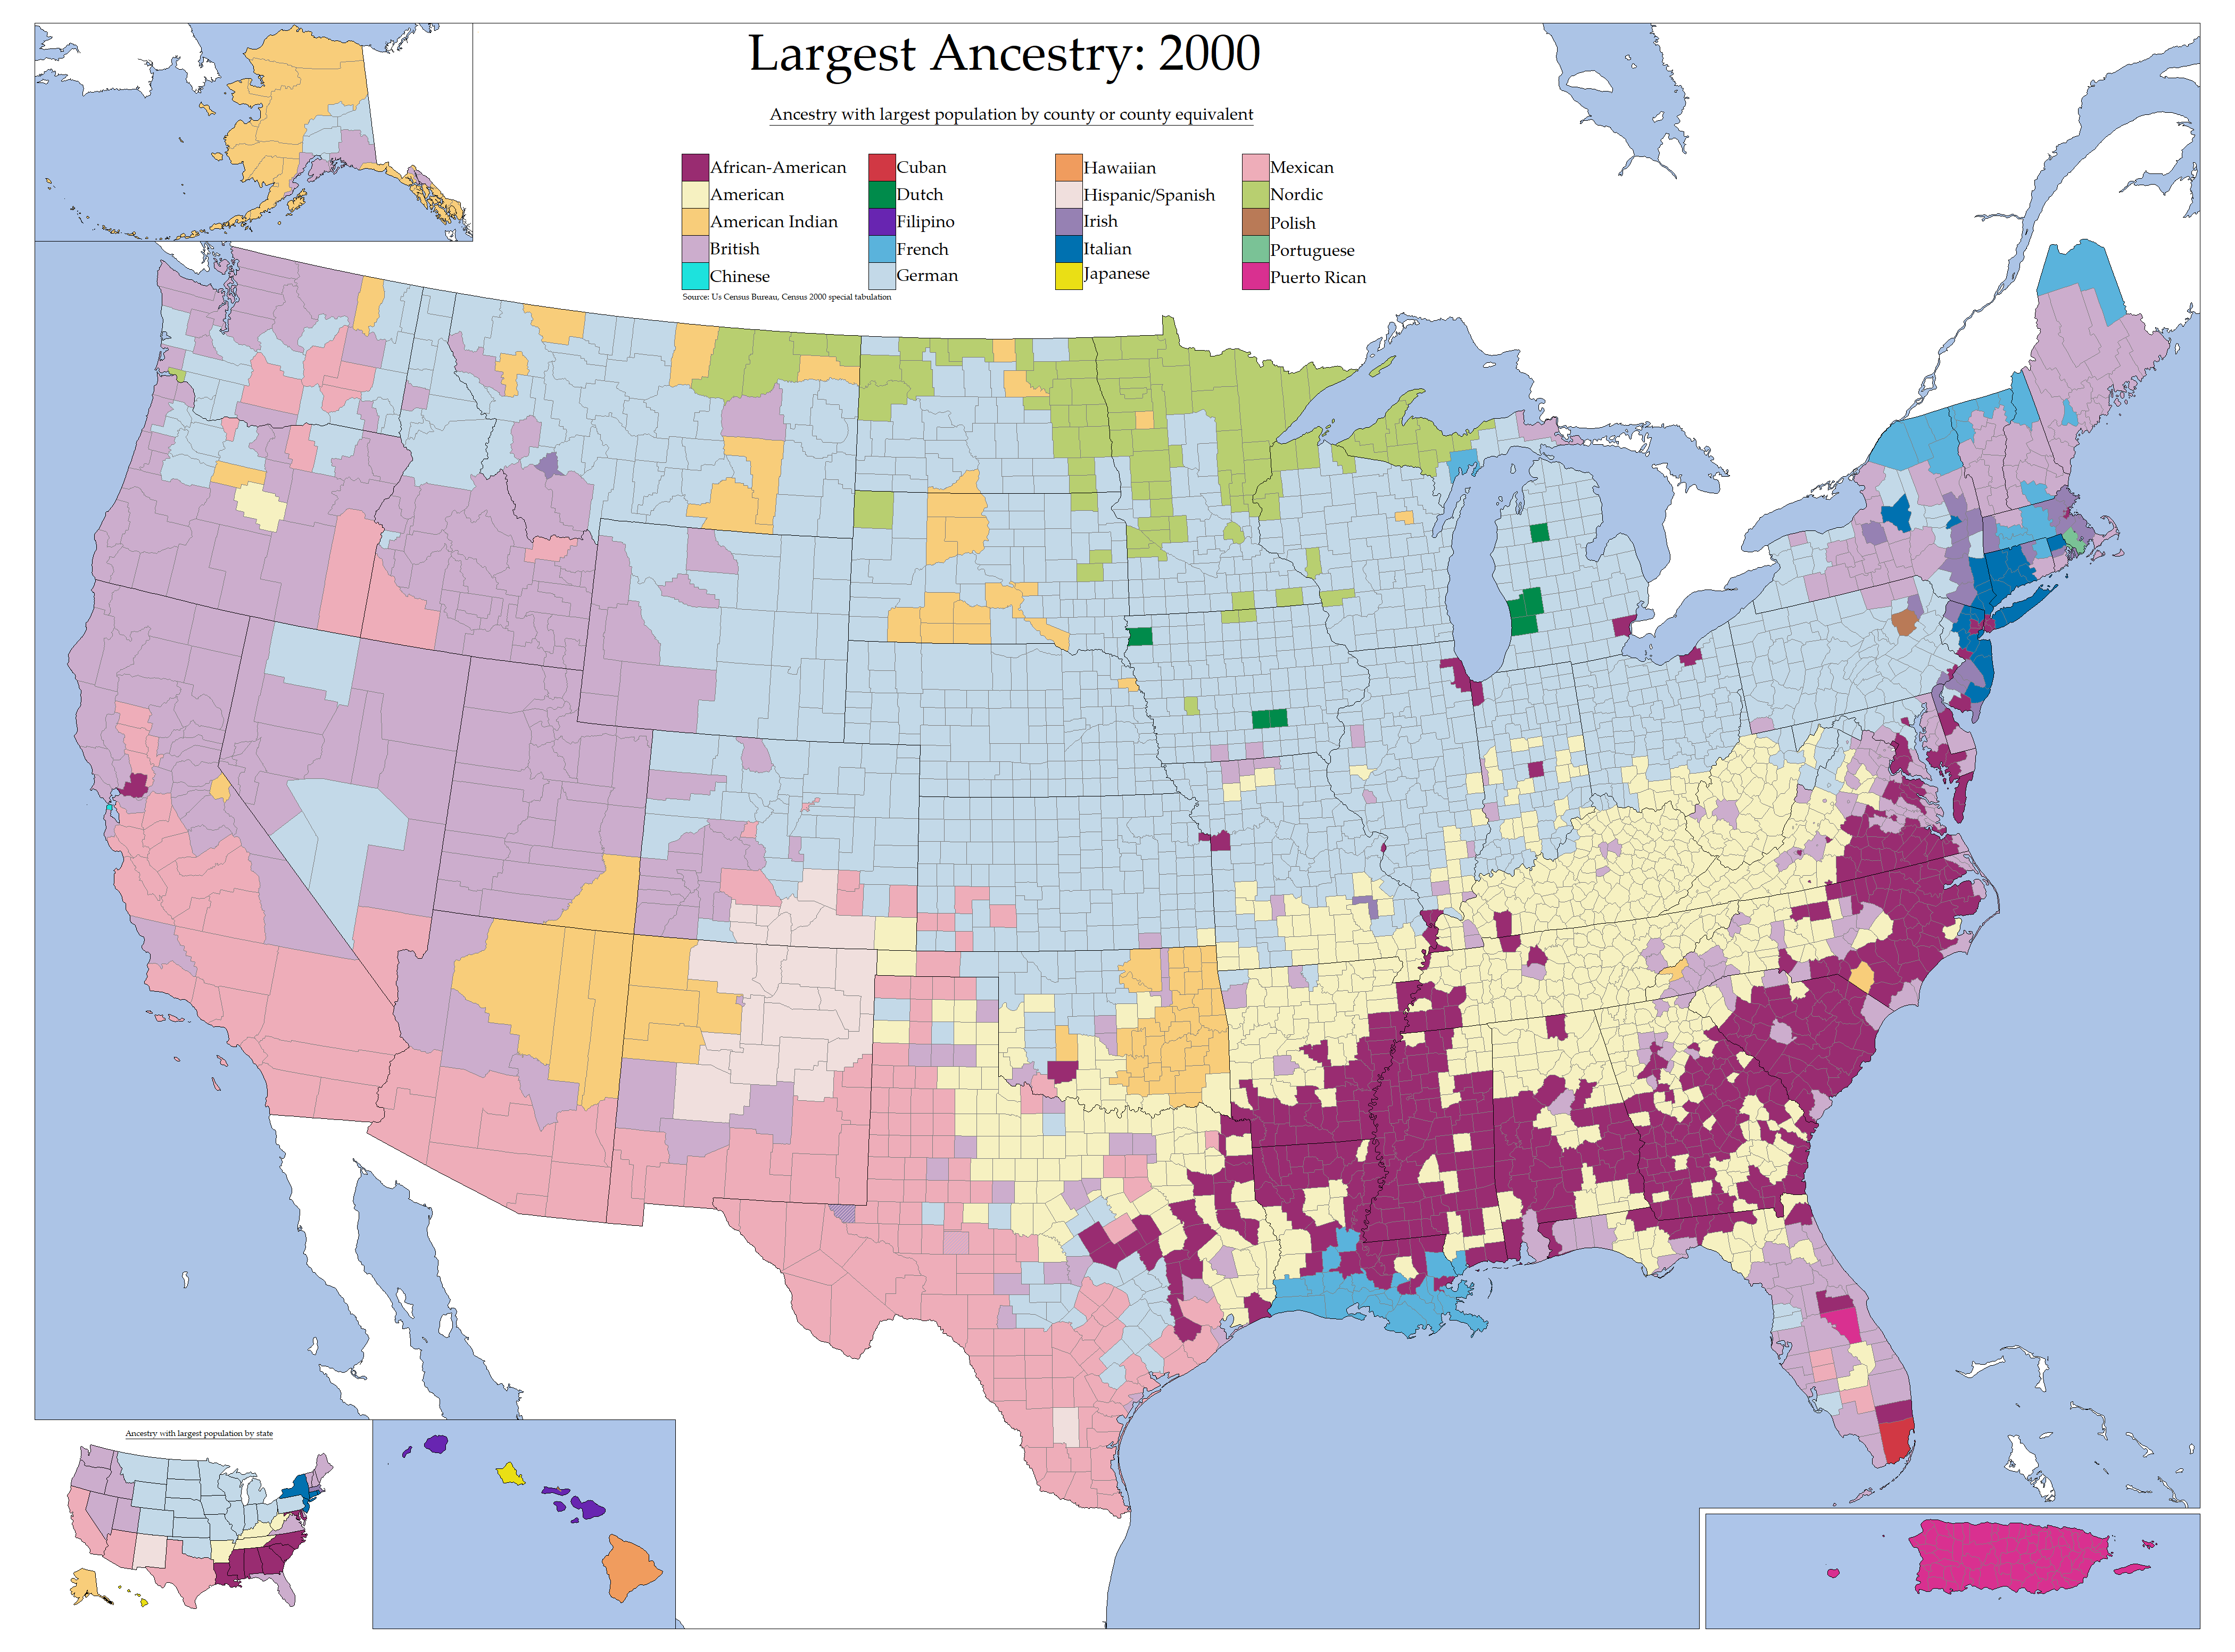 Largest Ancestry in the United States by county in 2000 4200x3105